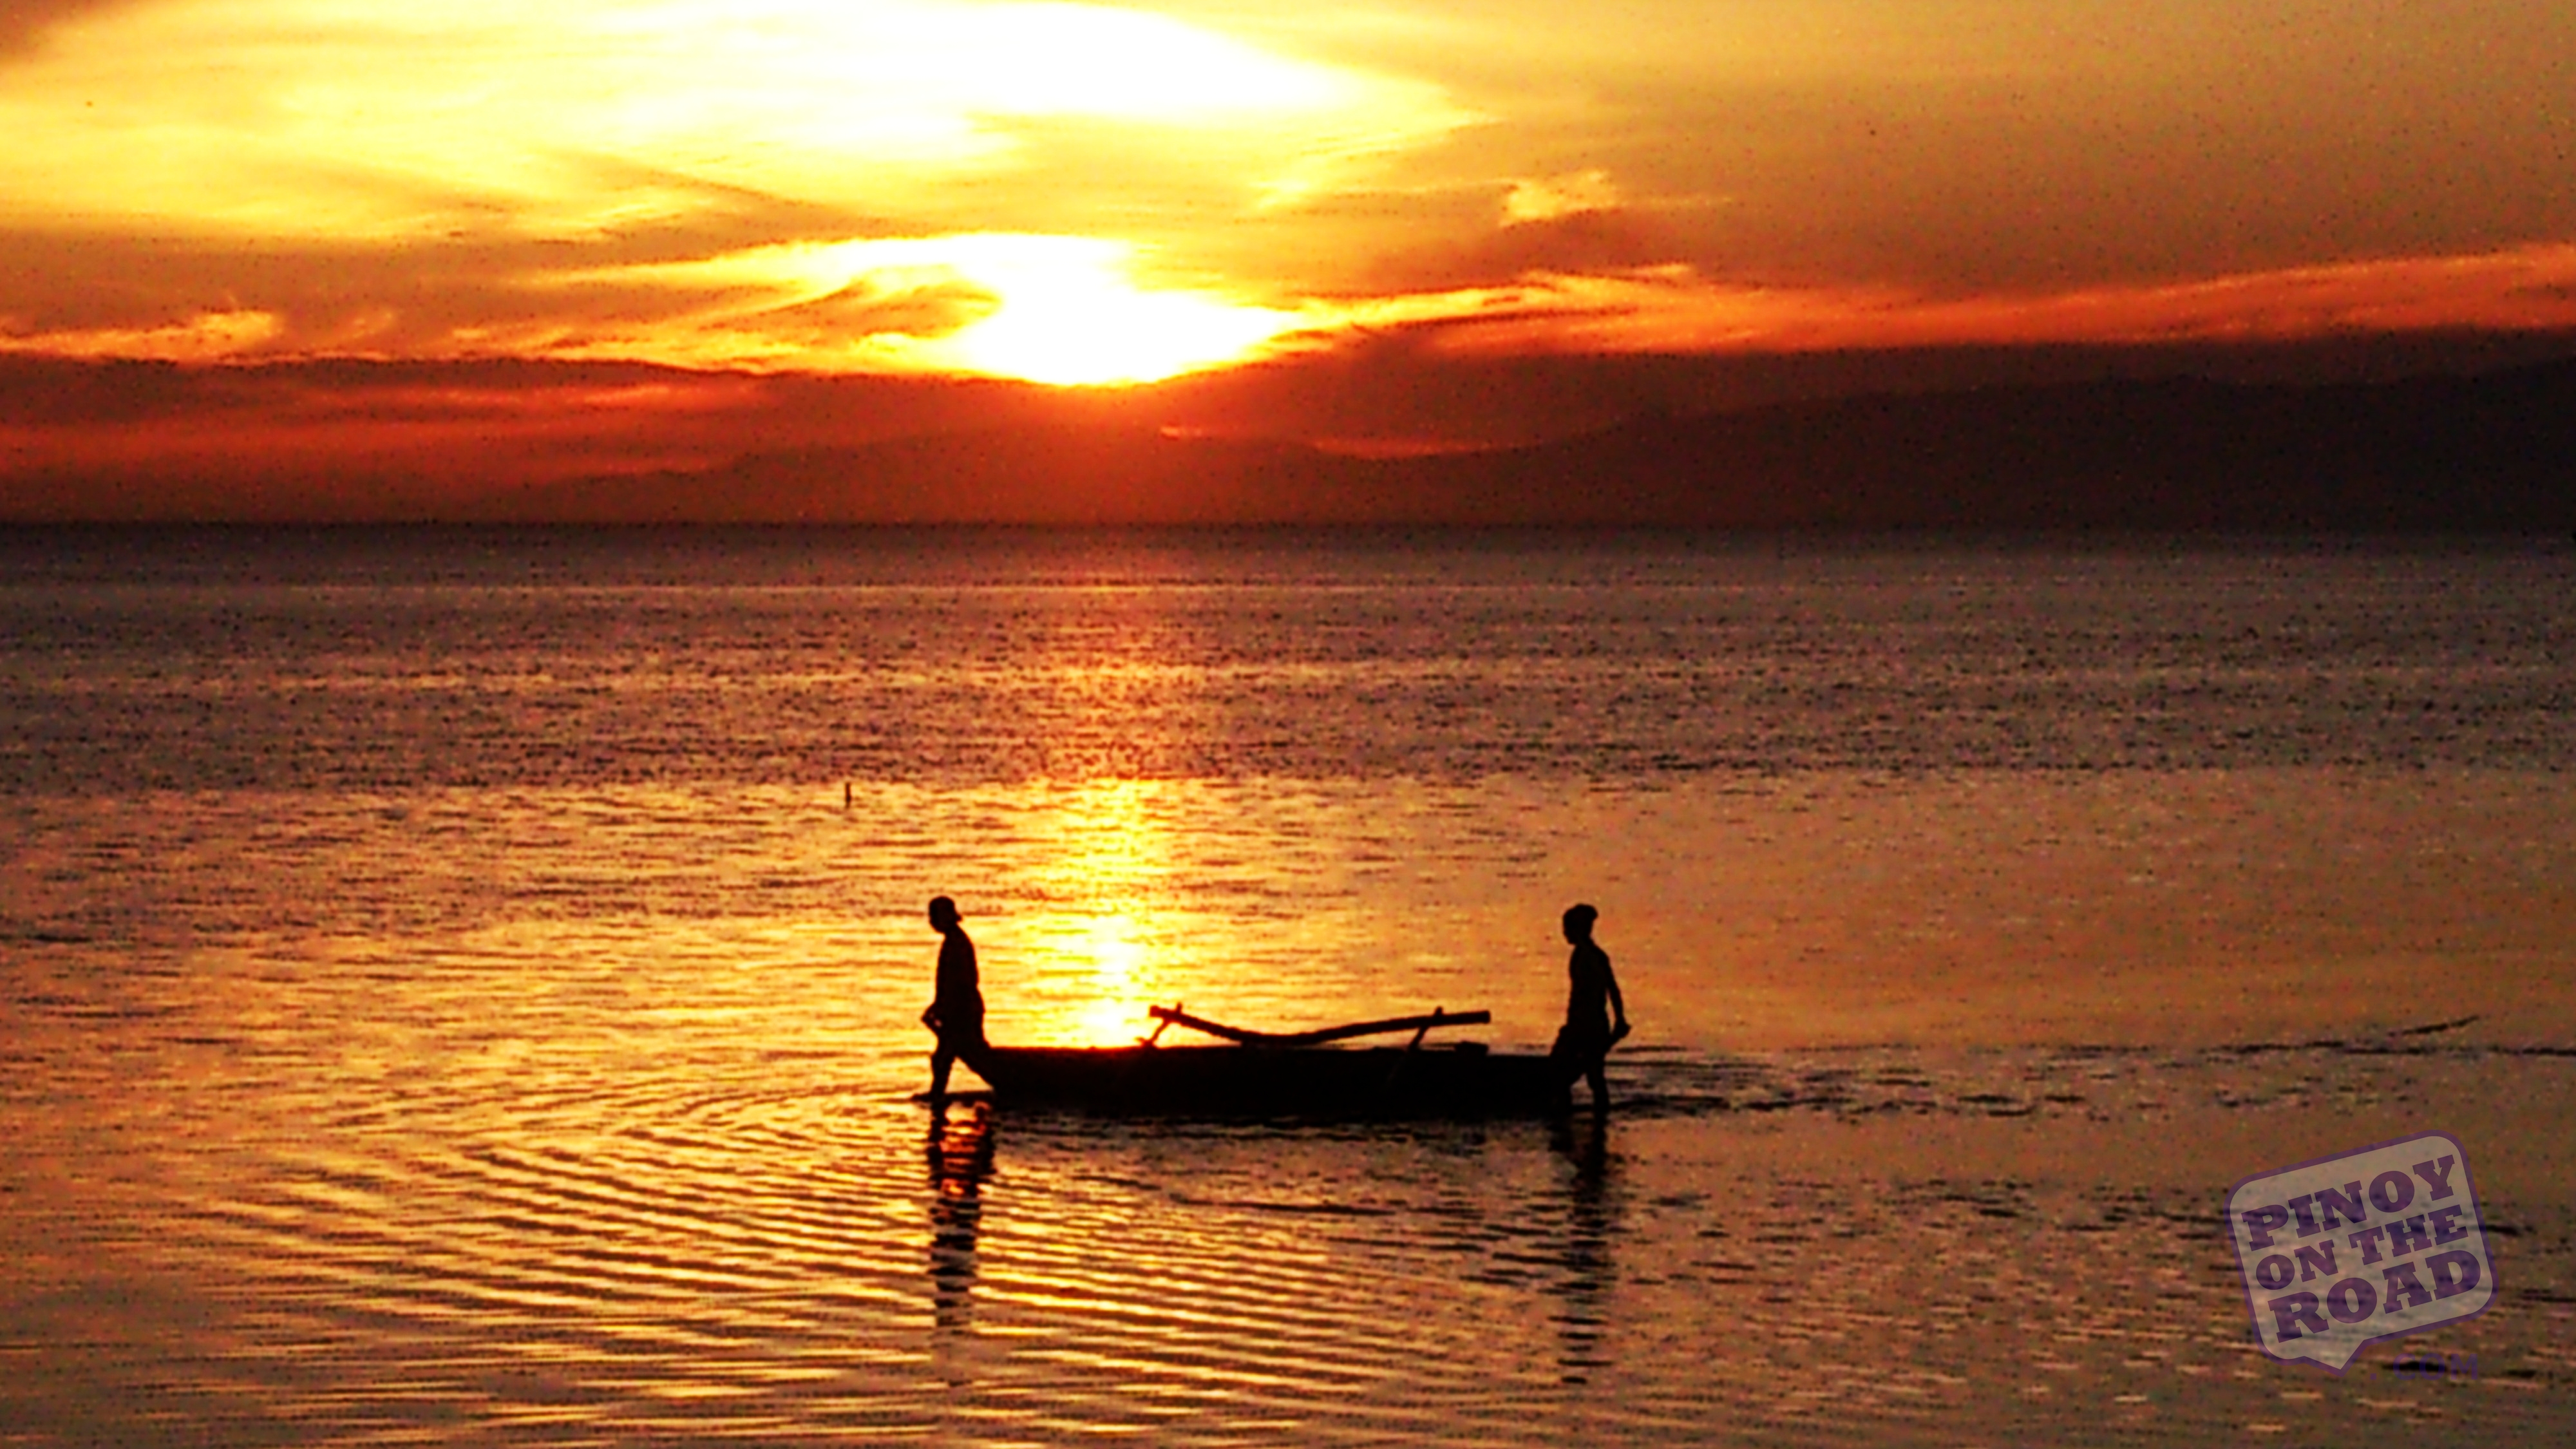 Magical Siquijor Sunset – PinoyOnTheRoad